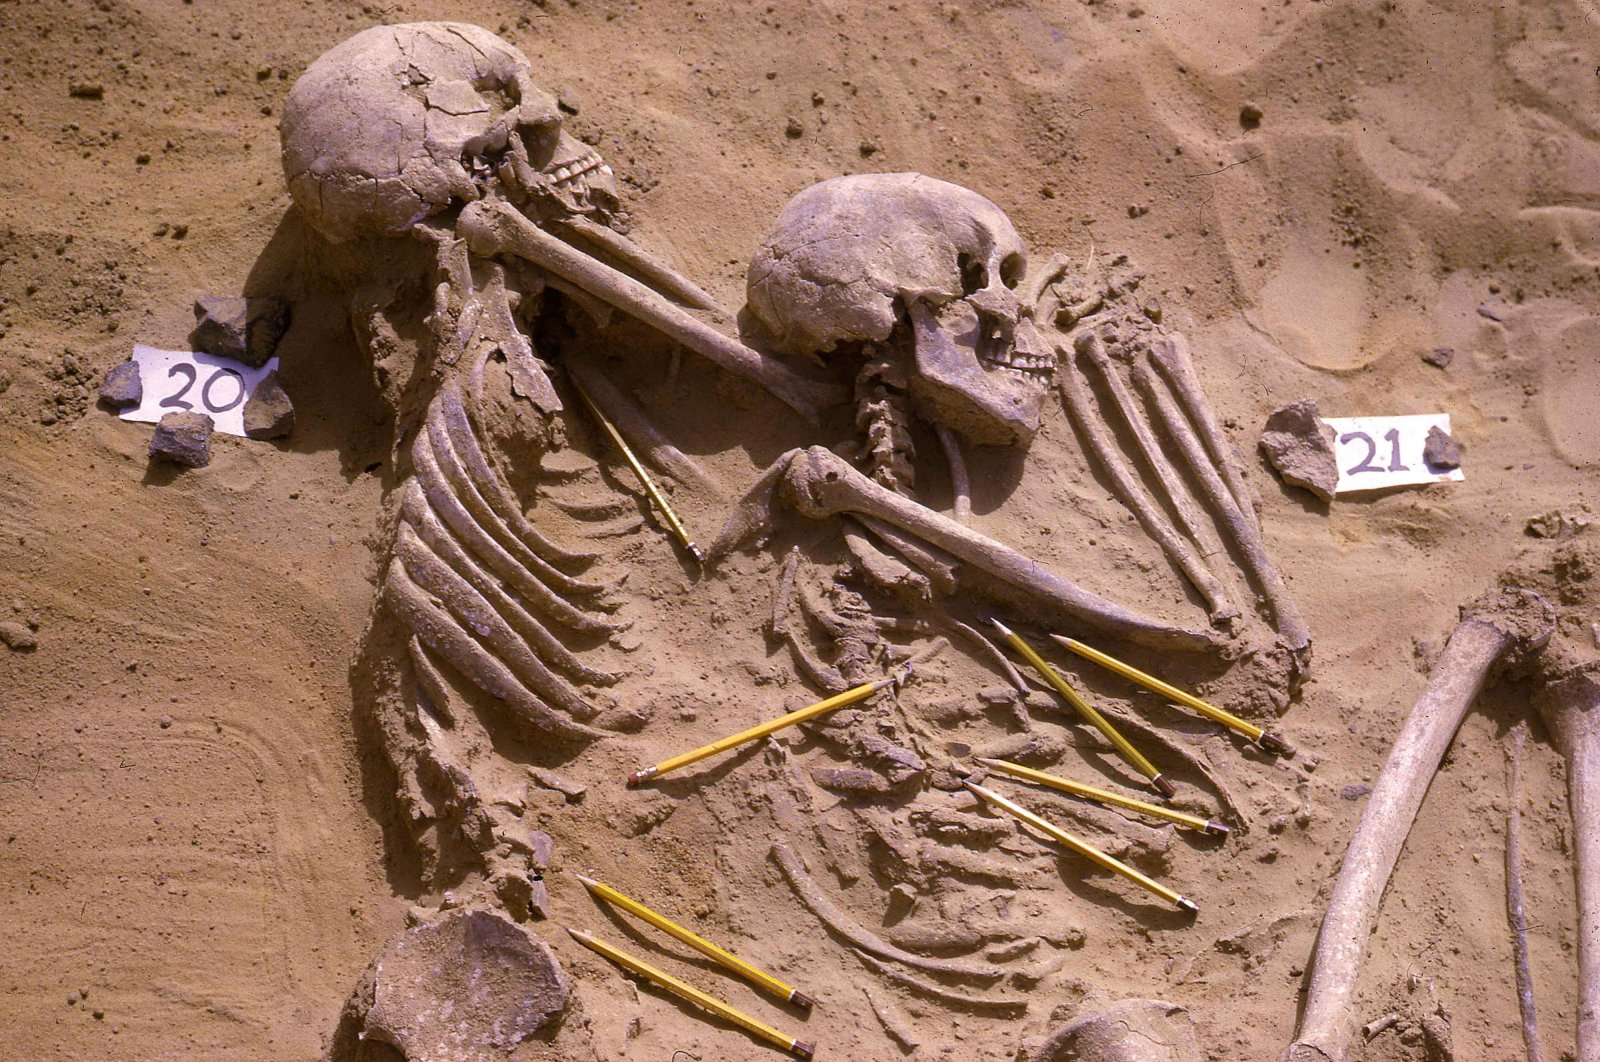 The double burial of individuals identified as JS 20 and JS 21 from among the 13,400-year-old Jebel Sahaba remains, some of the earliest evidence of human warfare, with pencils marking the position of associated stone artefacts, Sudan. (Reuters Photo)